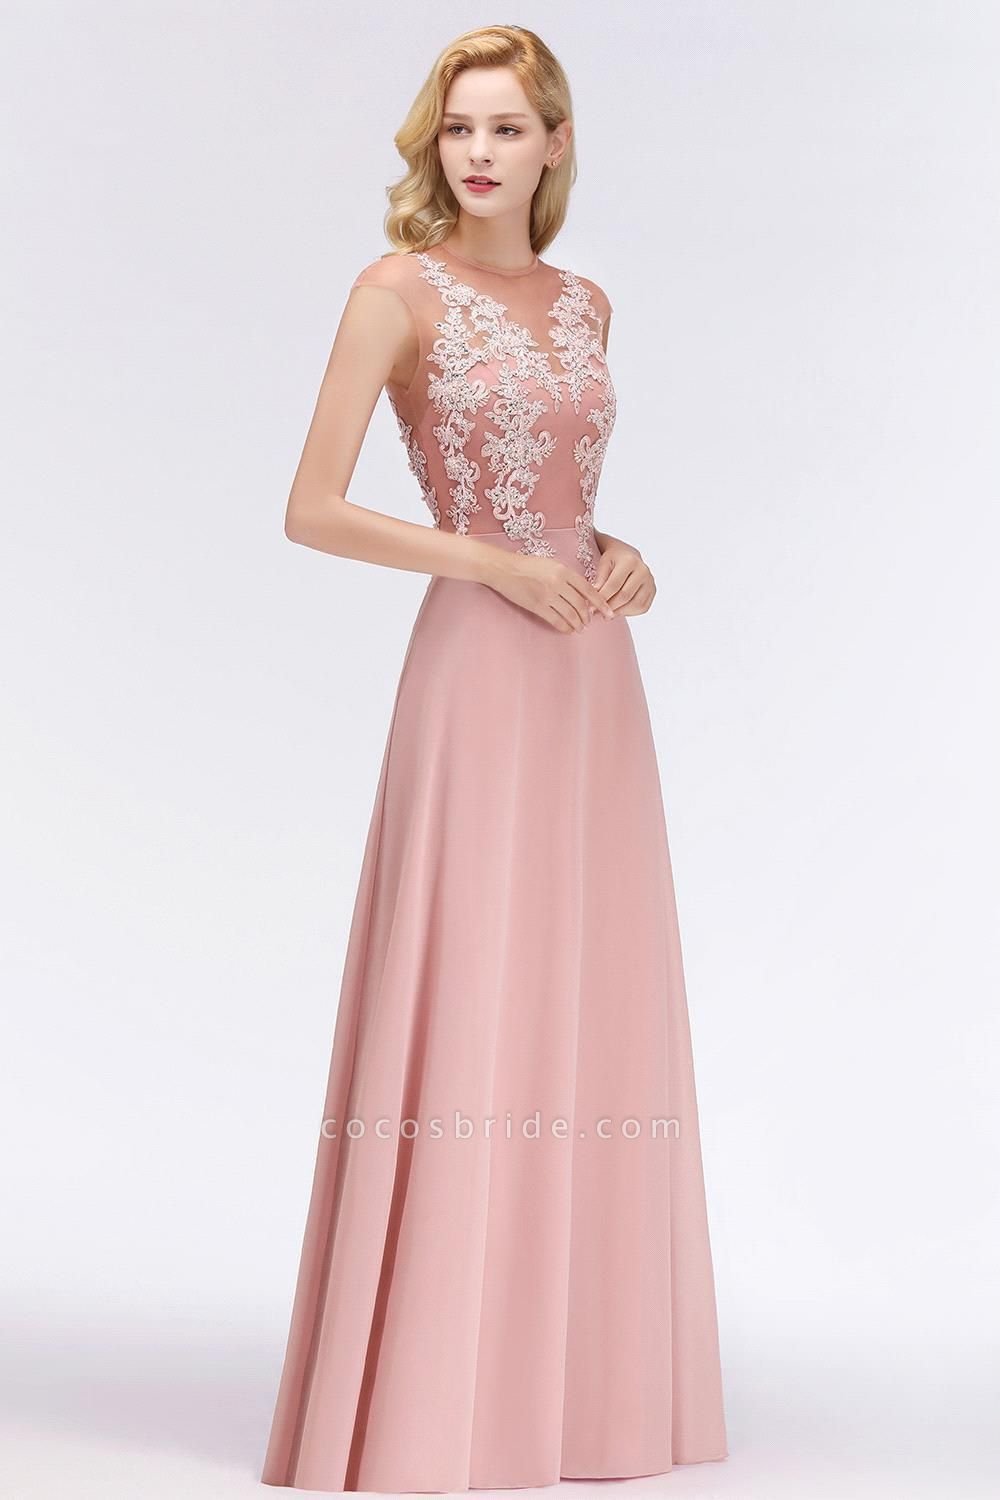 Lace Appliques Beads Cap Sleeve A-line Evening Prom Dress